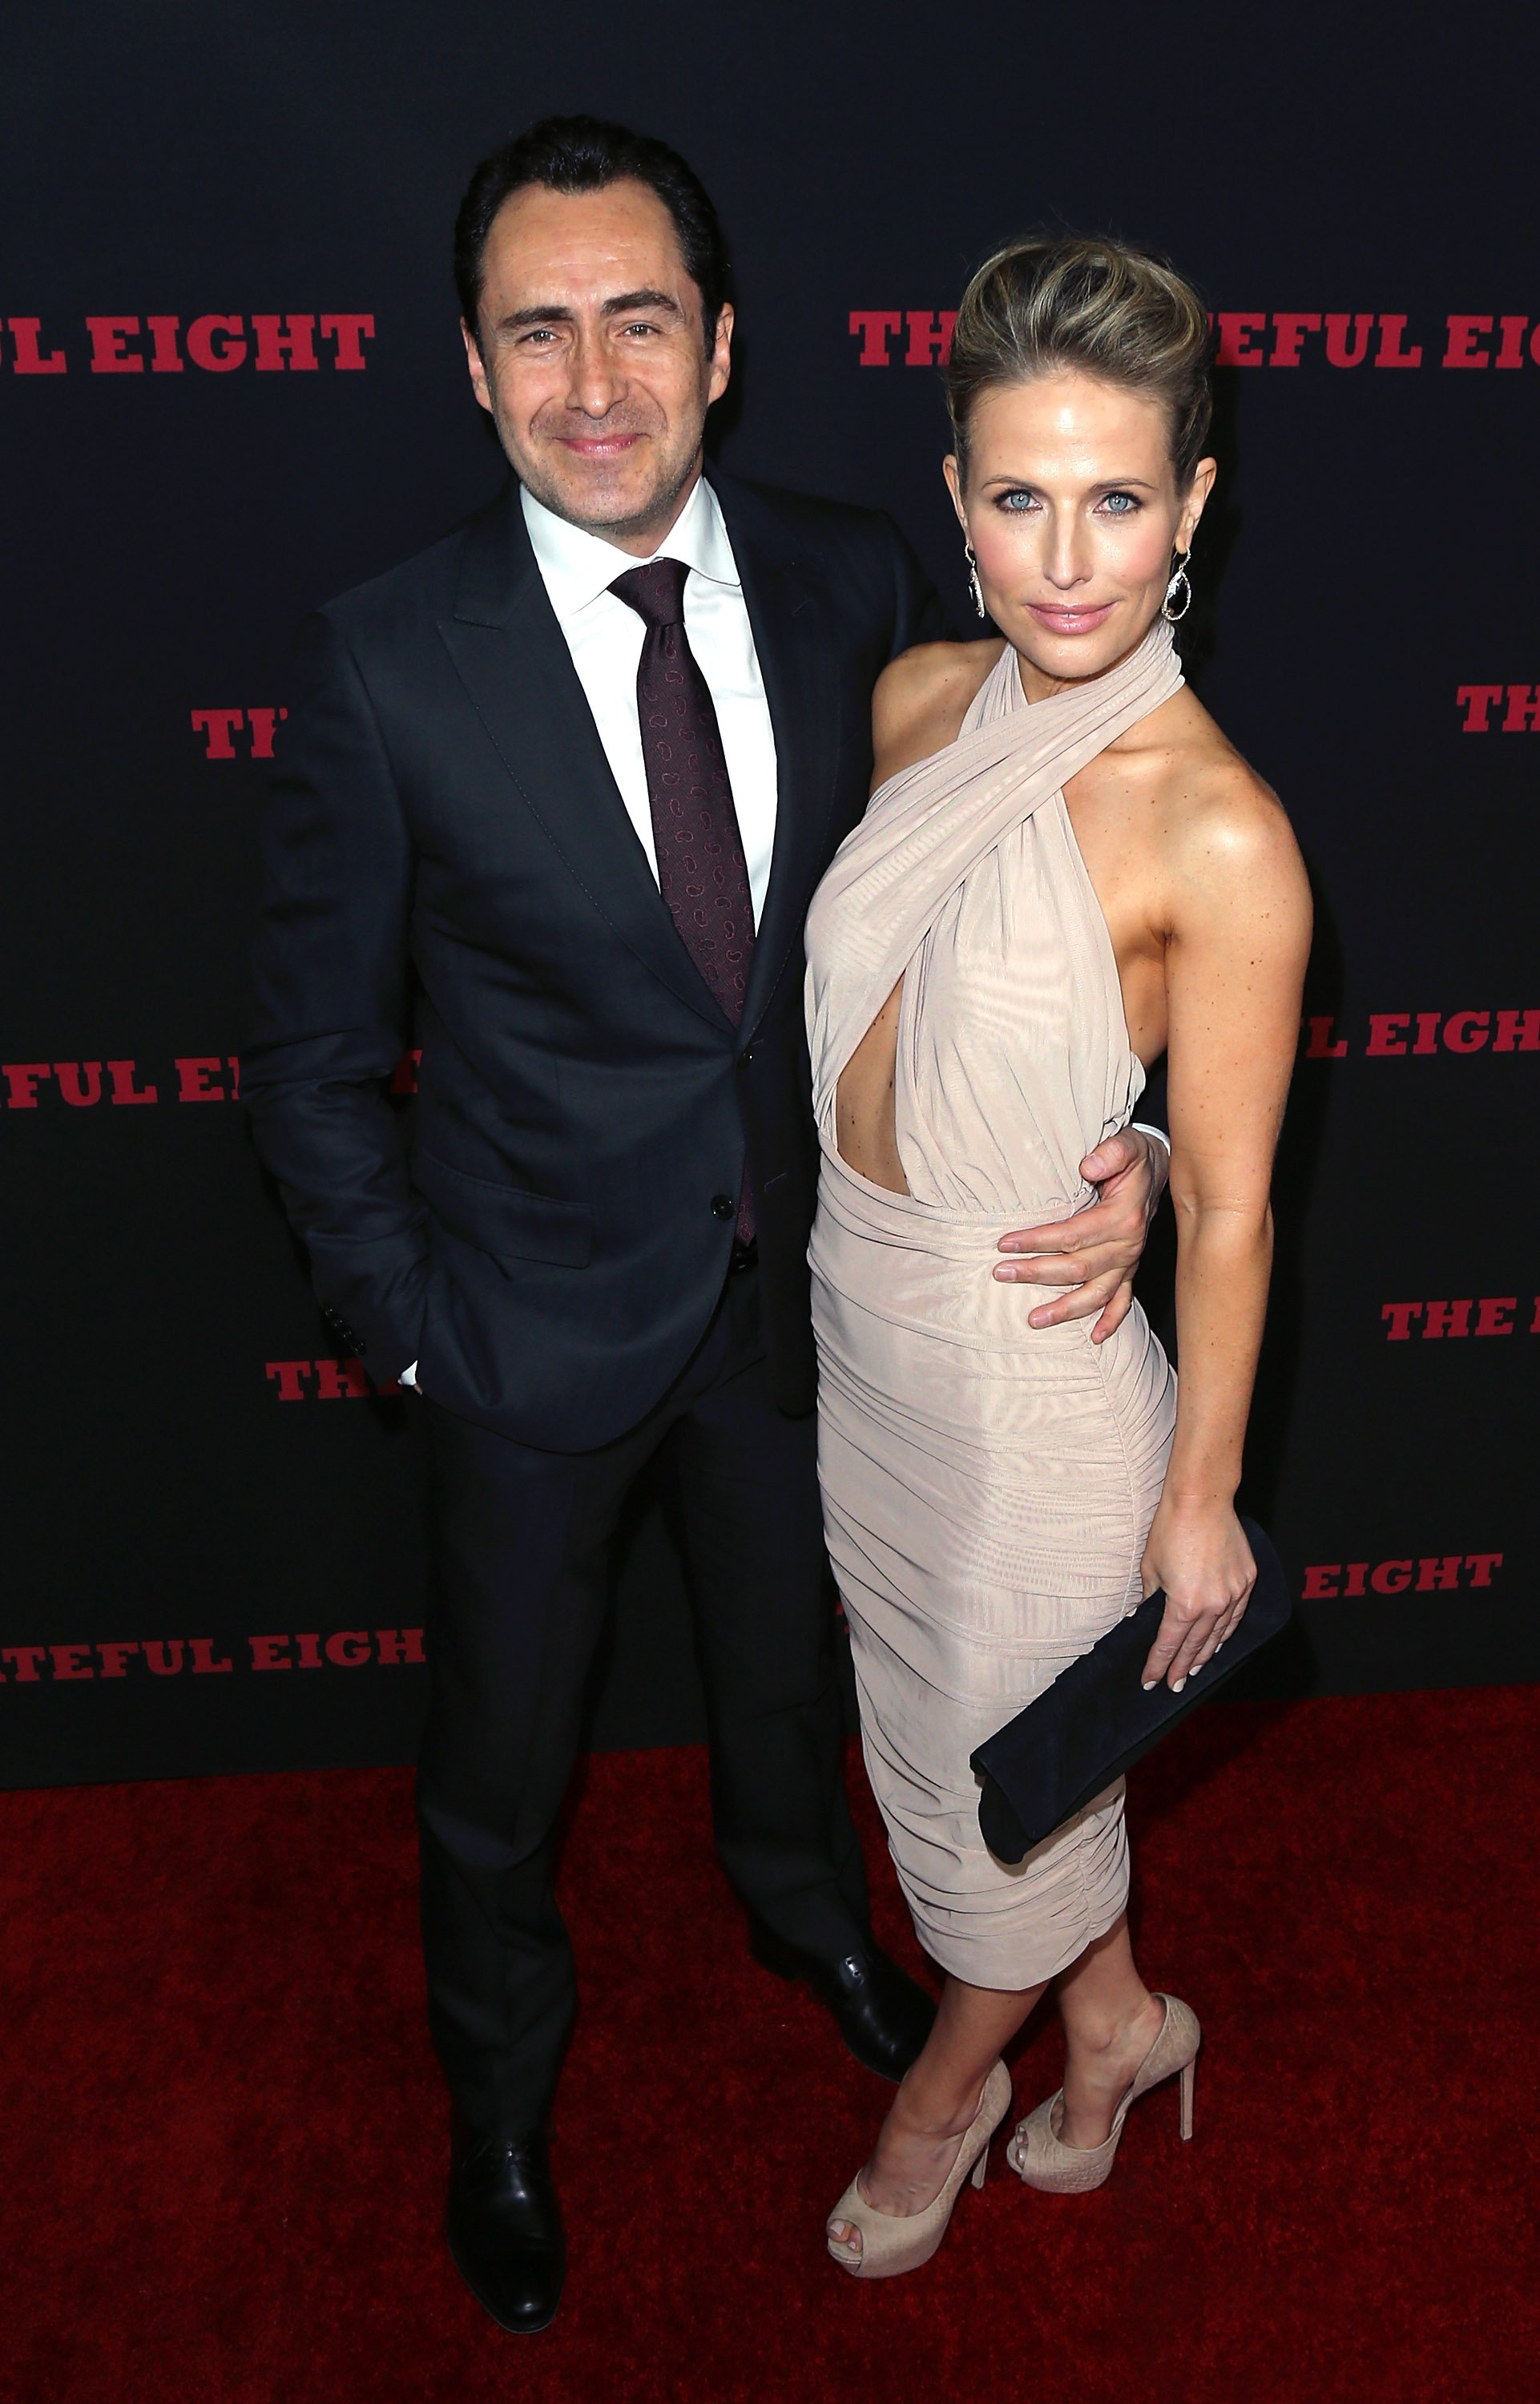 Demián Bichir and Stefanie Sherk | Photo: Getty Images